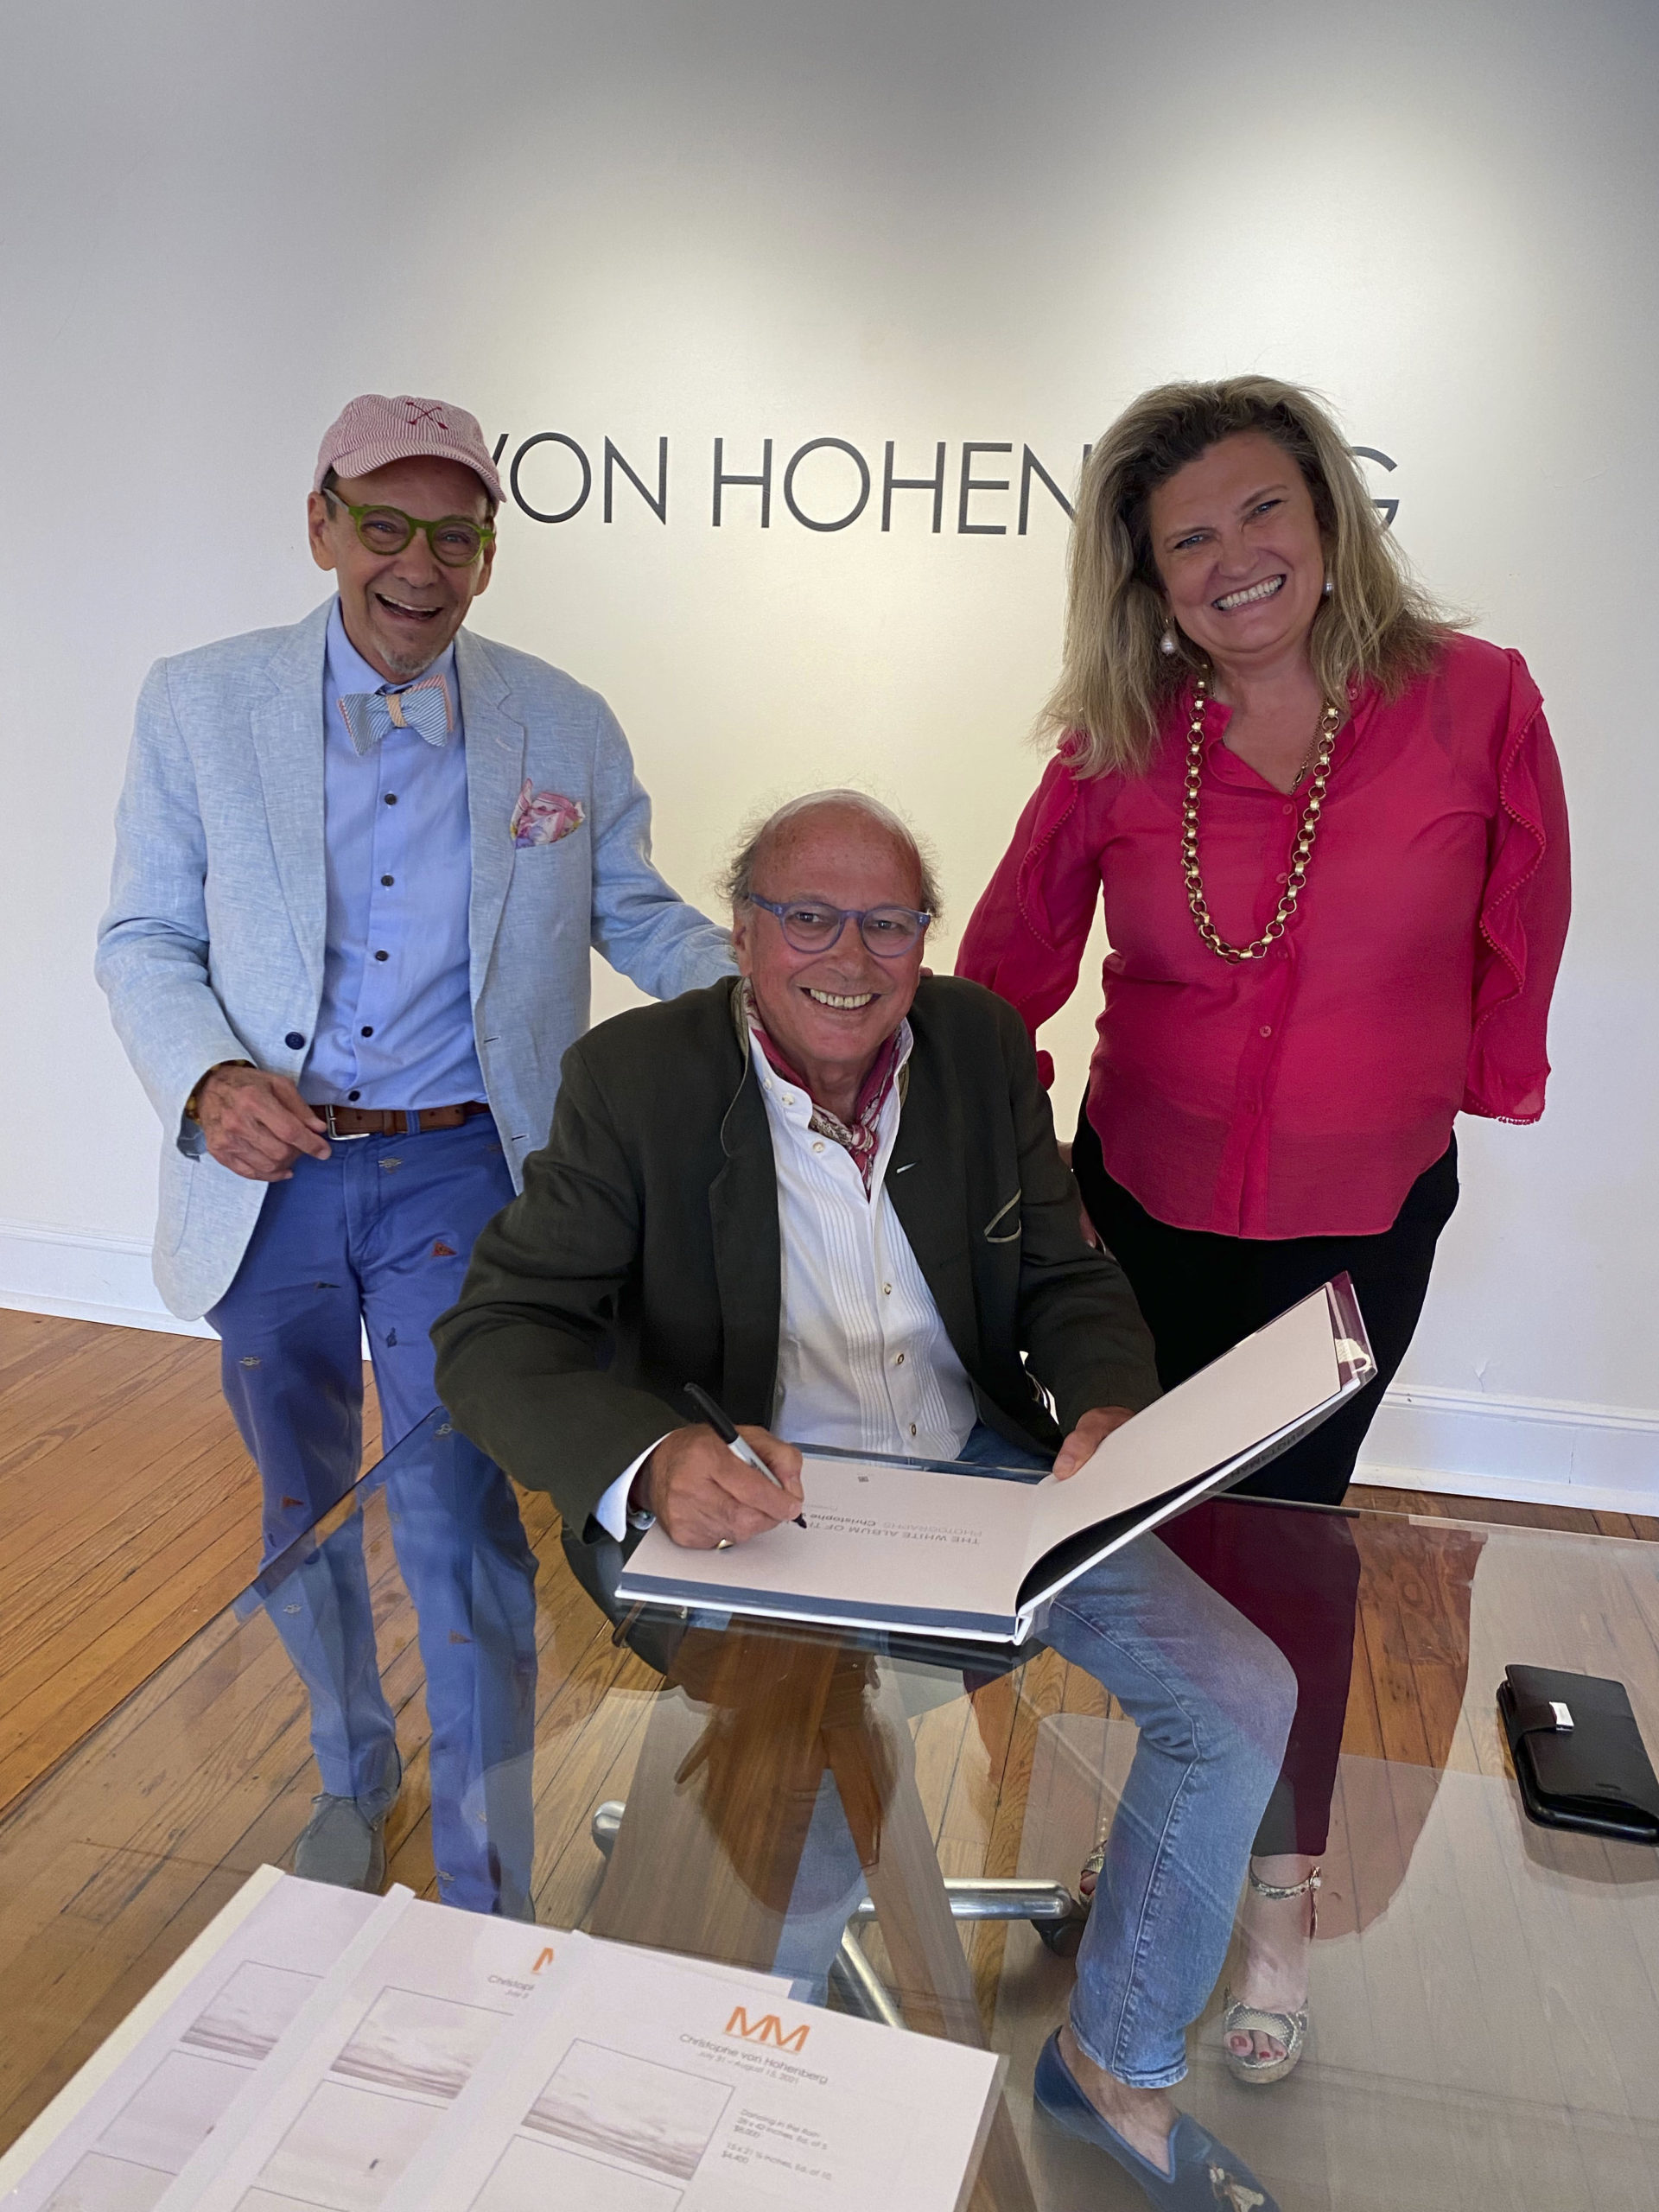 Bruce Helander, Christophe Von Hohenberg and Melanie Seymour Holland at the book signing.  GREG DELIA